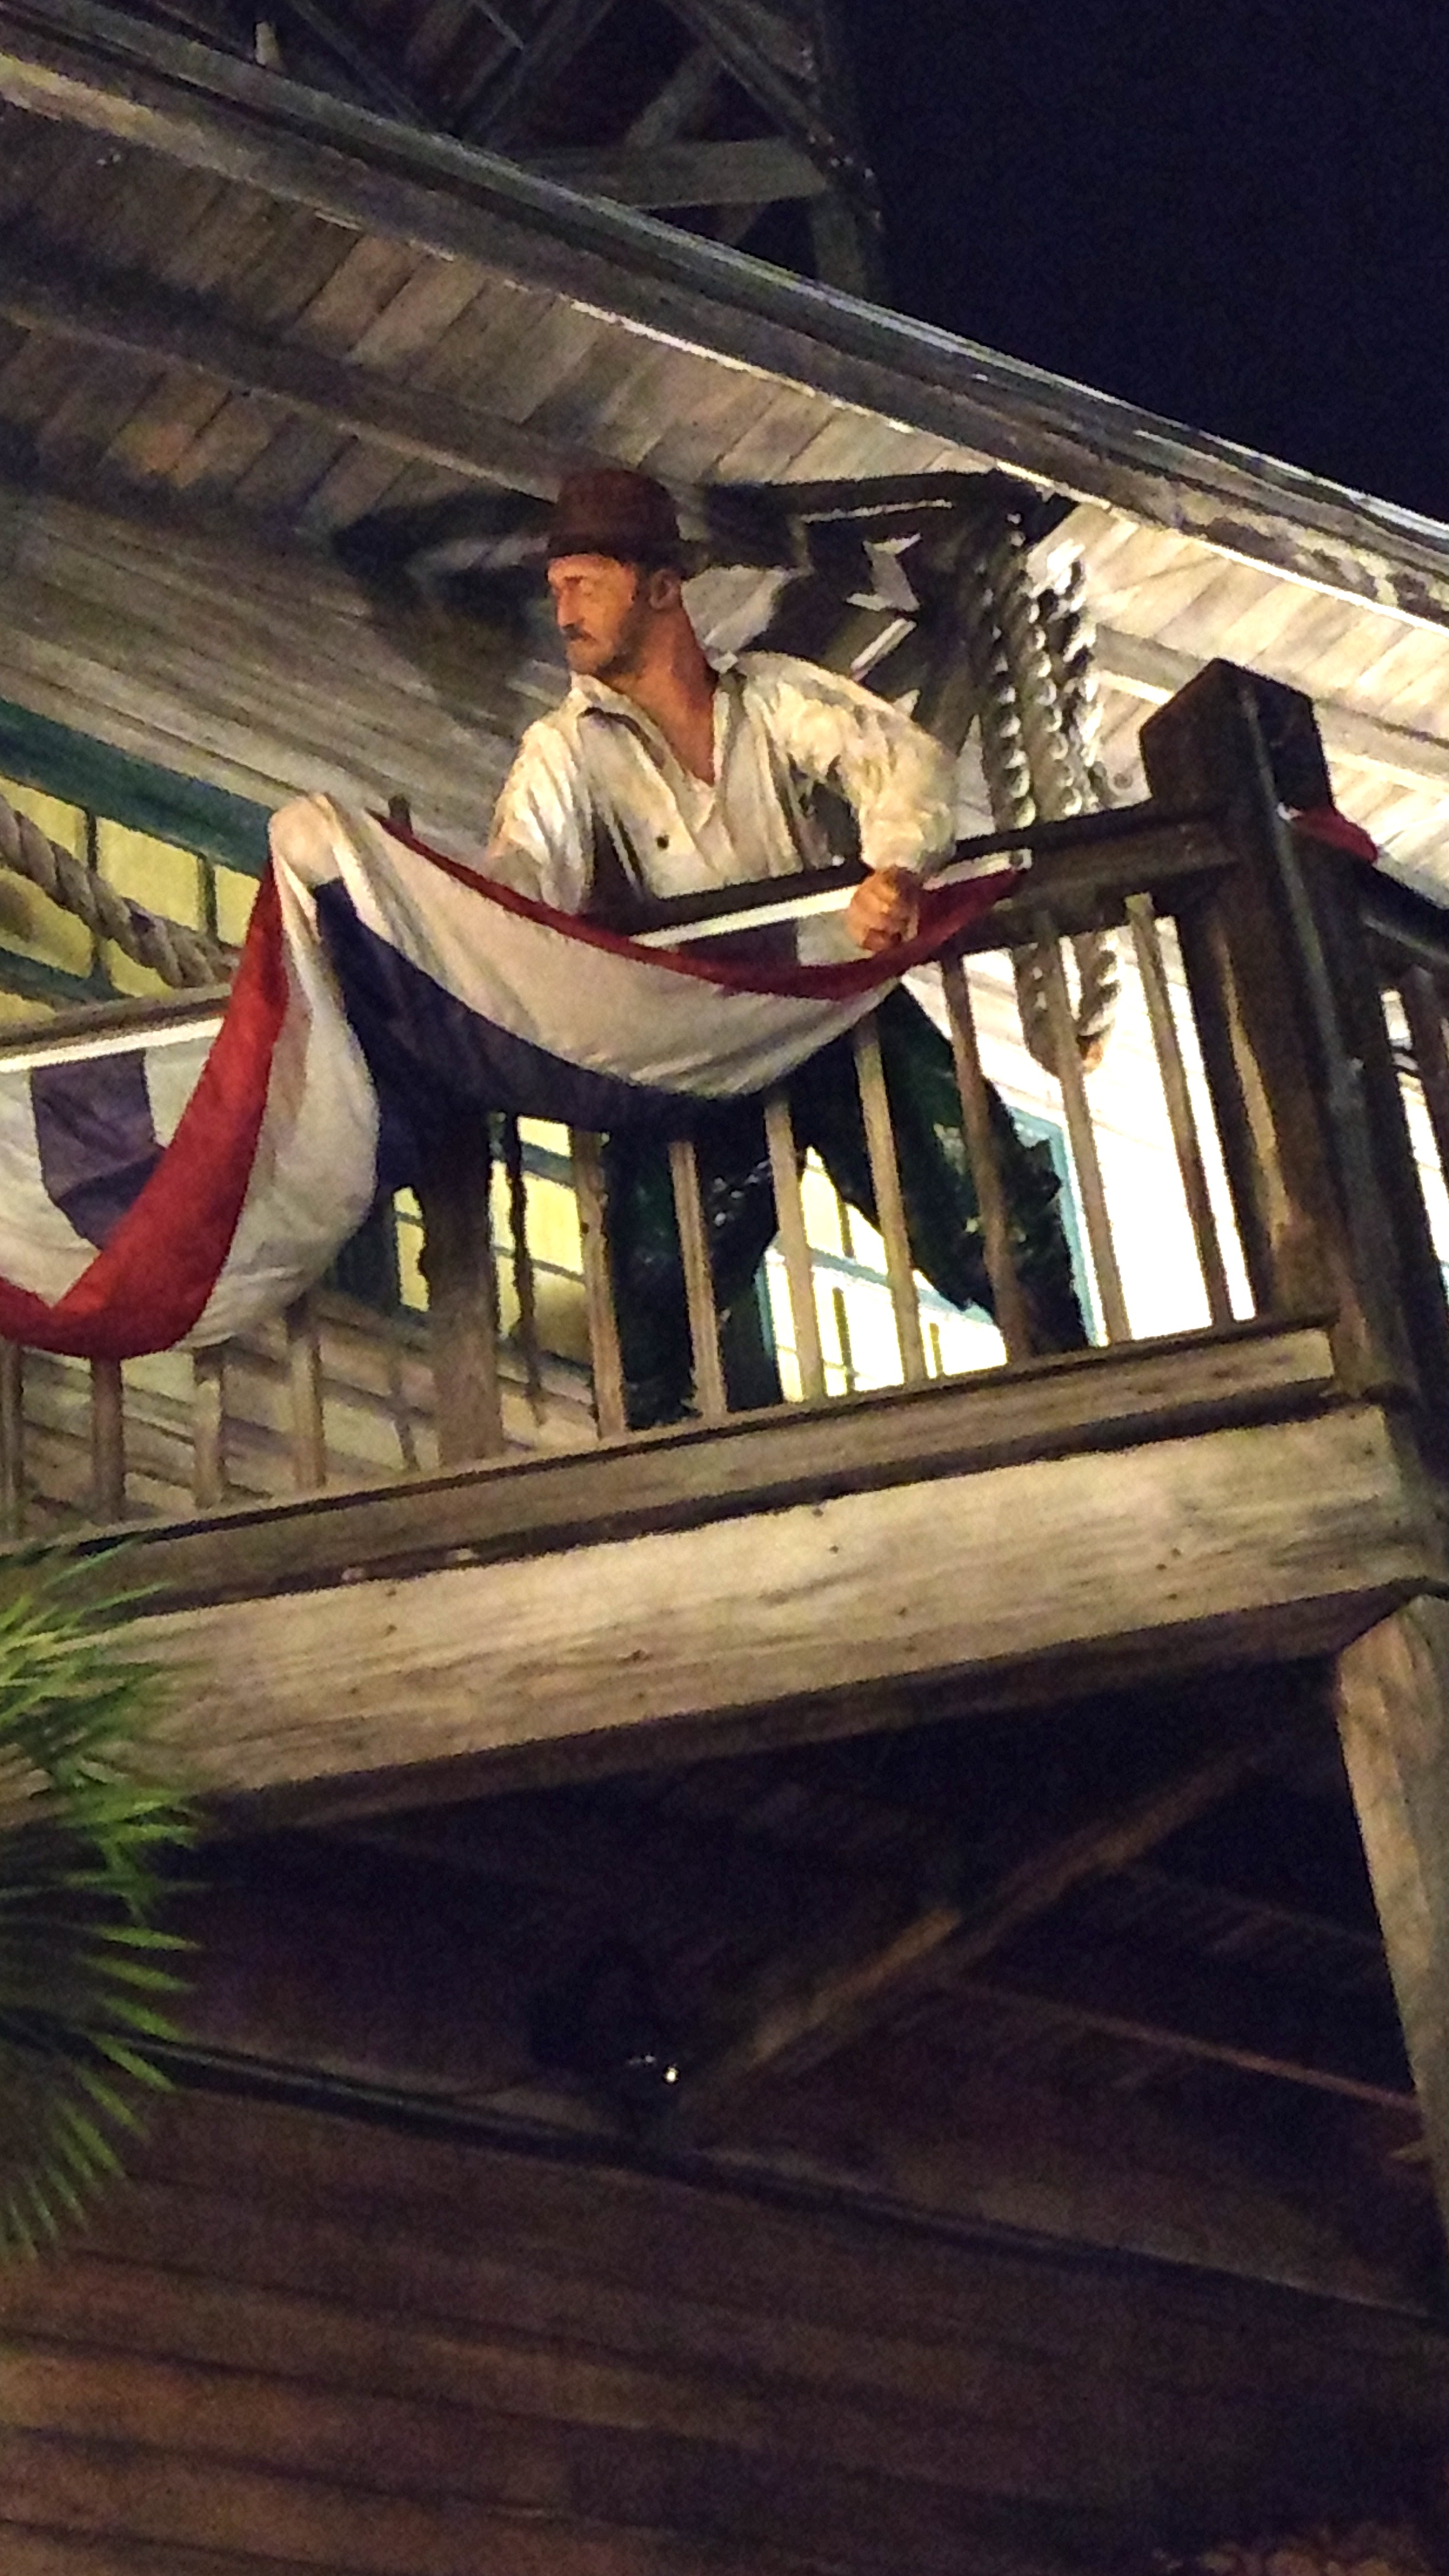 A mannequin stands on the balcony of the Shipwreck Treasures Museum.